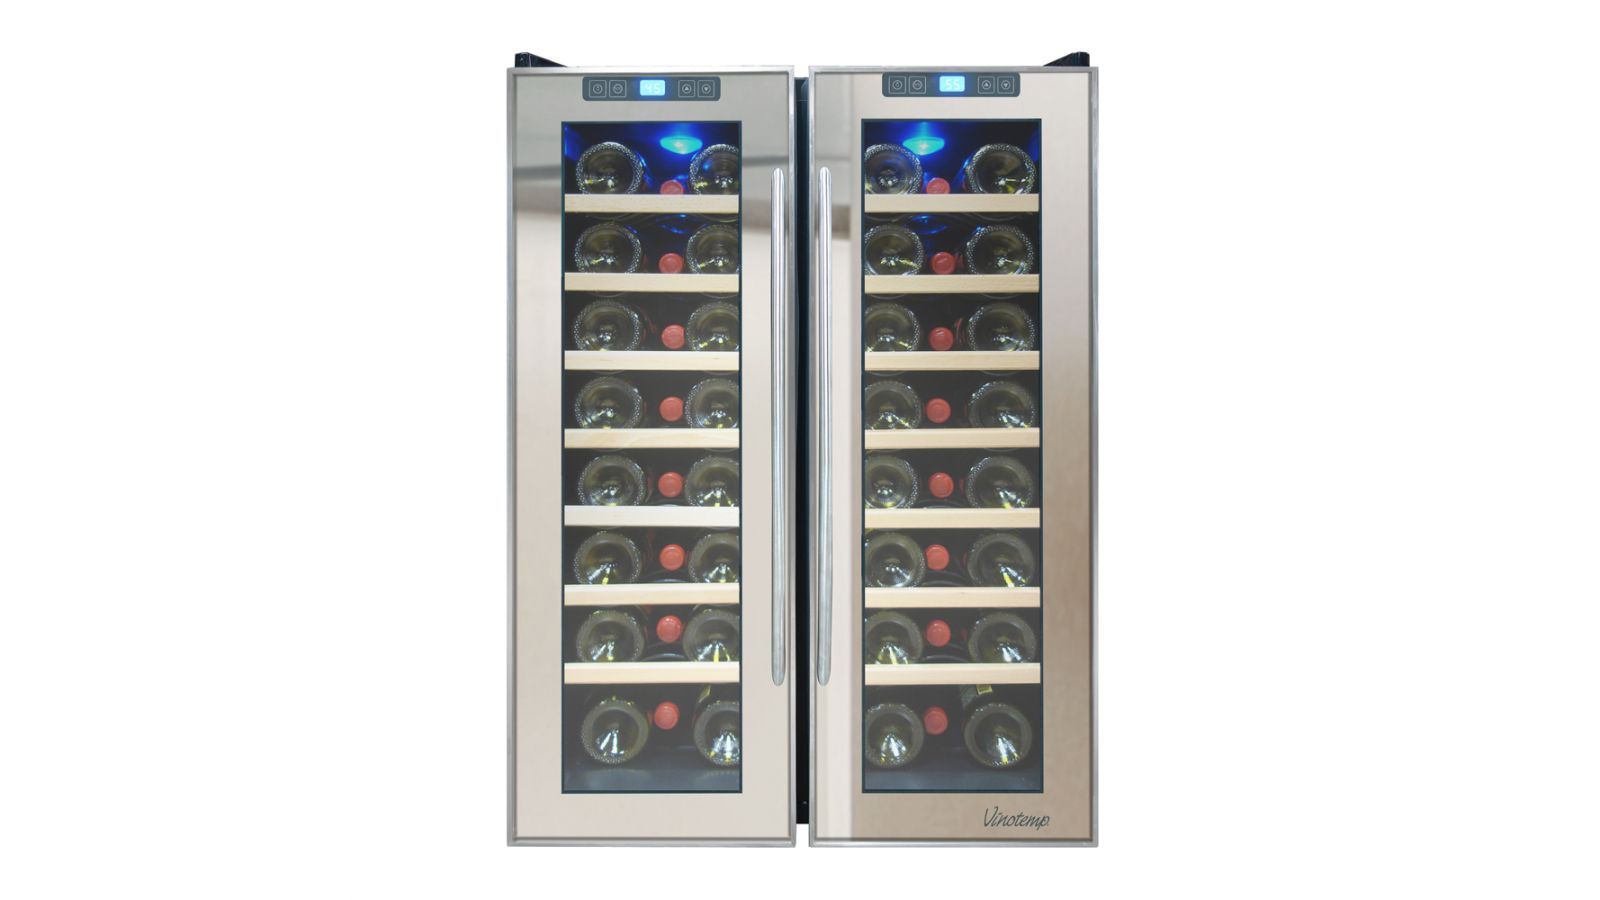 NEW: Vinotemp 48-Bottle Dual-Zone Thermoelectric Mirrored Wine Cooler